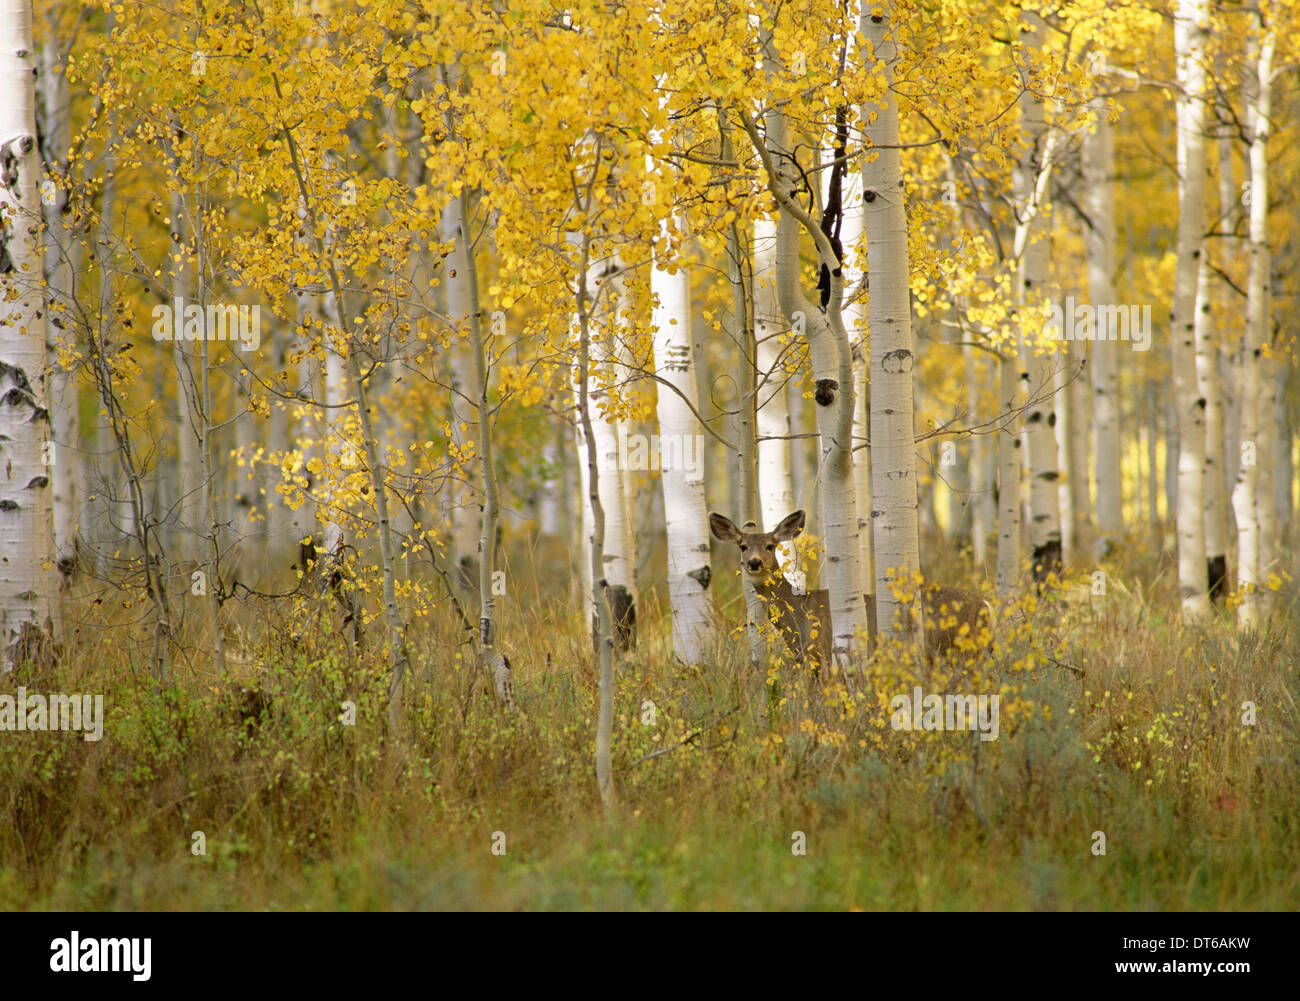 Autumn in Uinta national forest. A deer in the aspen trees. - Stock Image